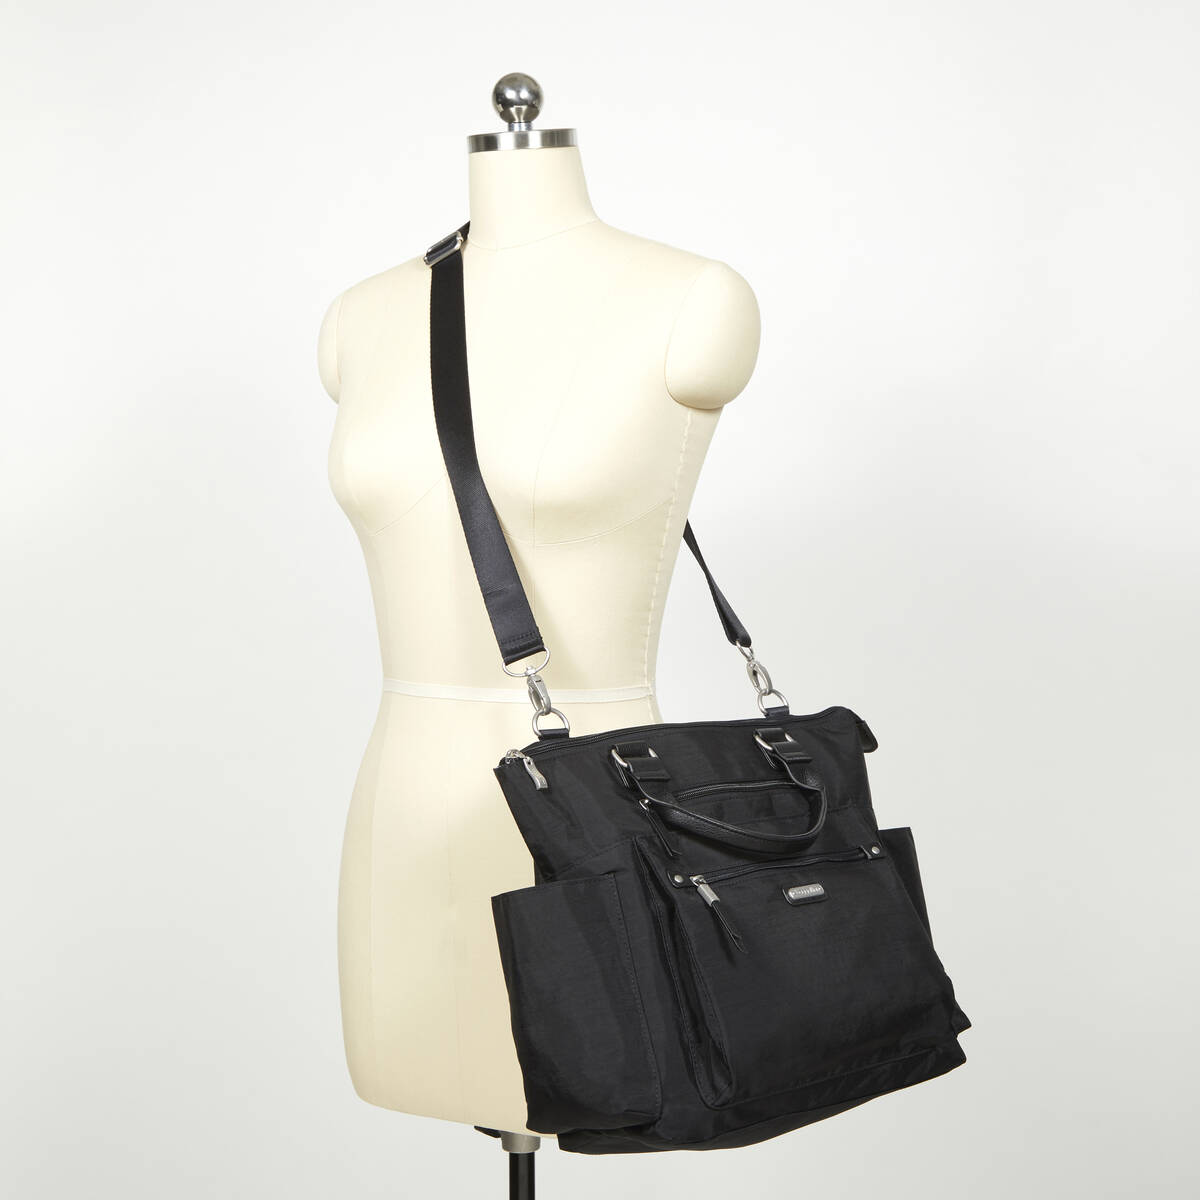 3-in-1 convertible backpack with rfid phone wristlet